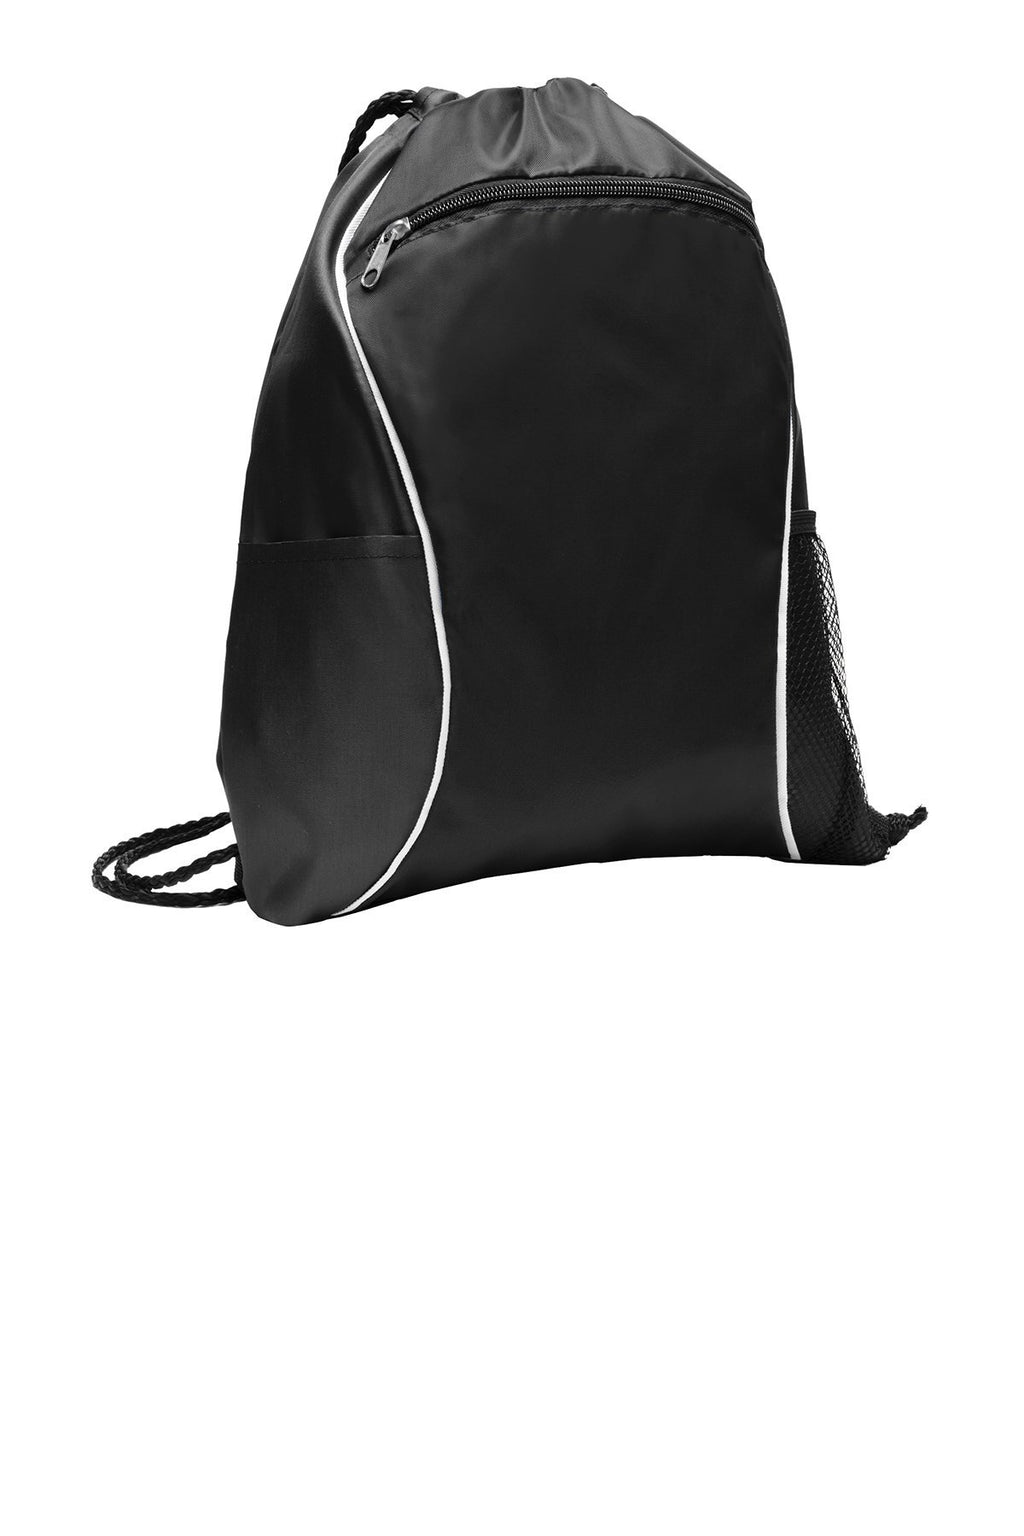 BAGANDTOTE Polyester BLACK Fast Break Cinch Pack